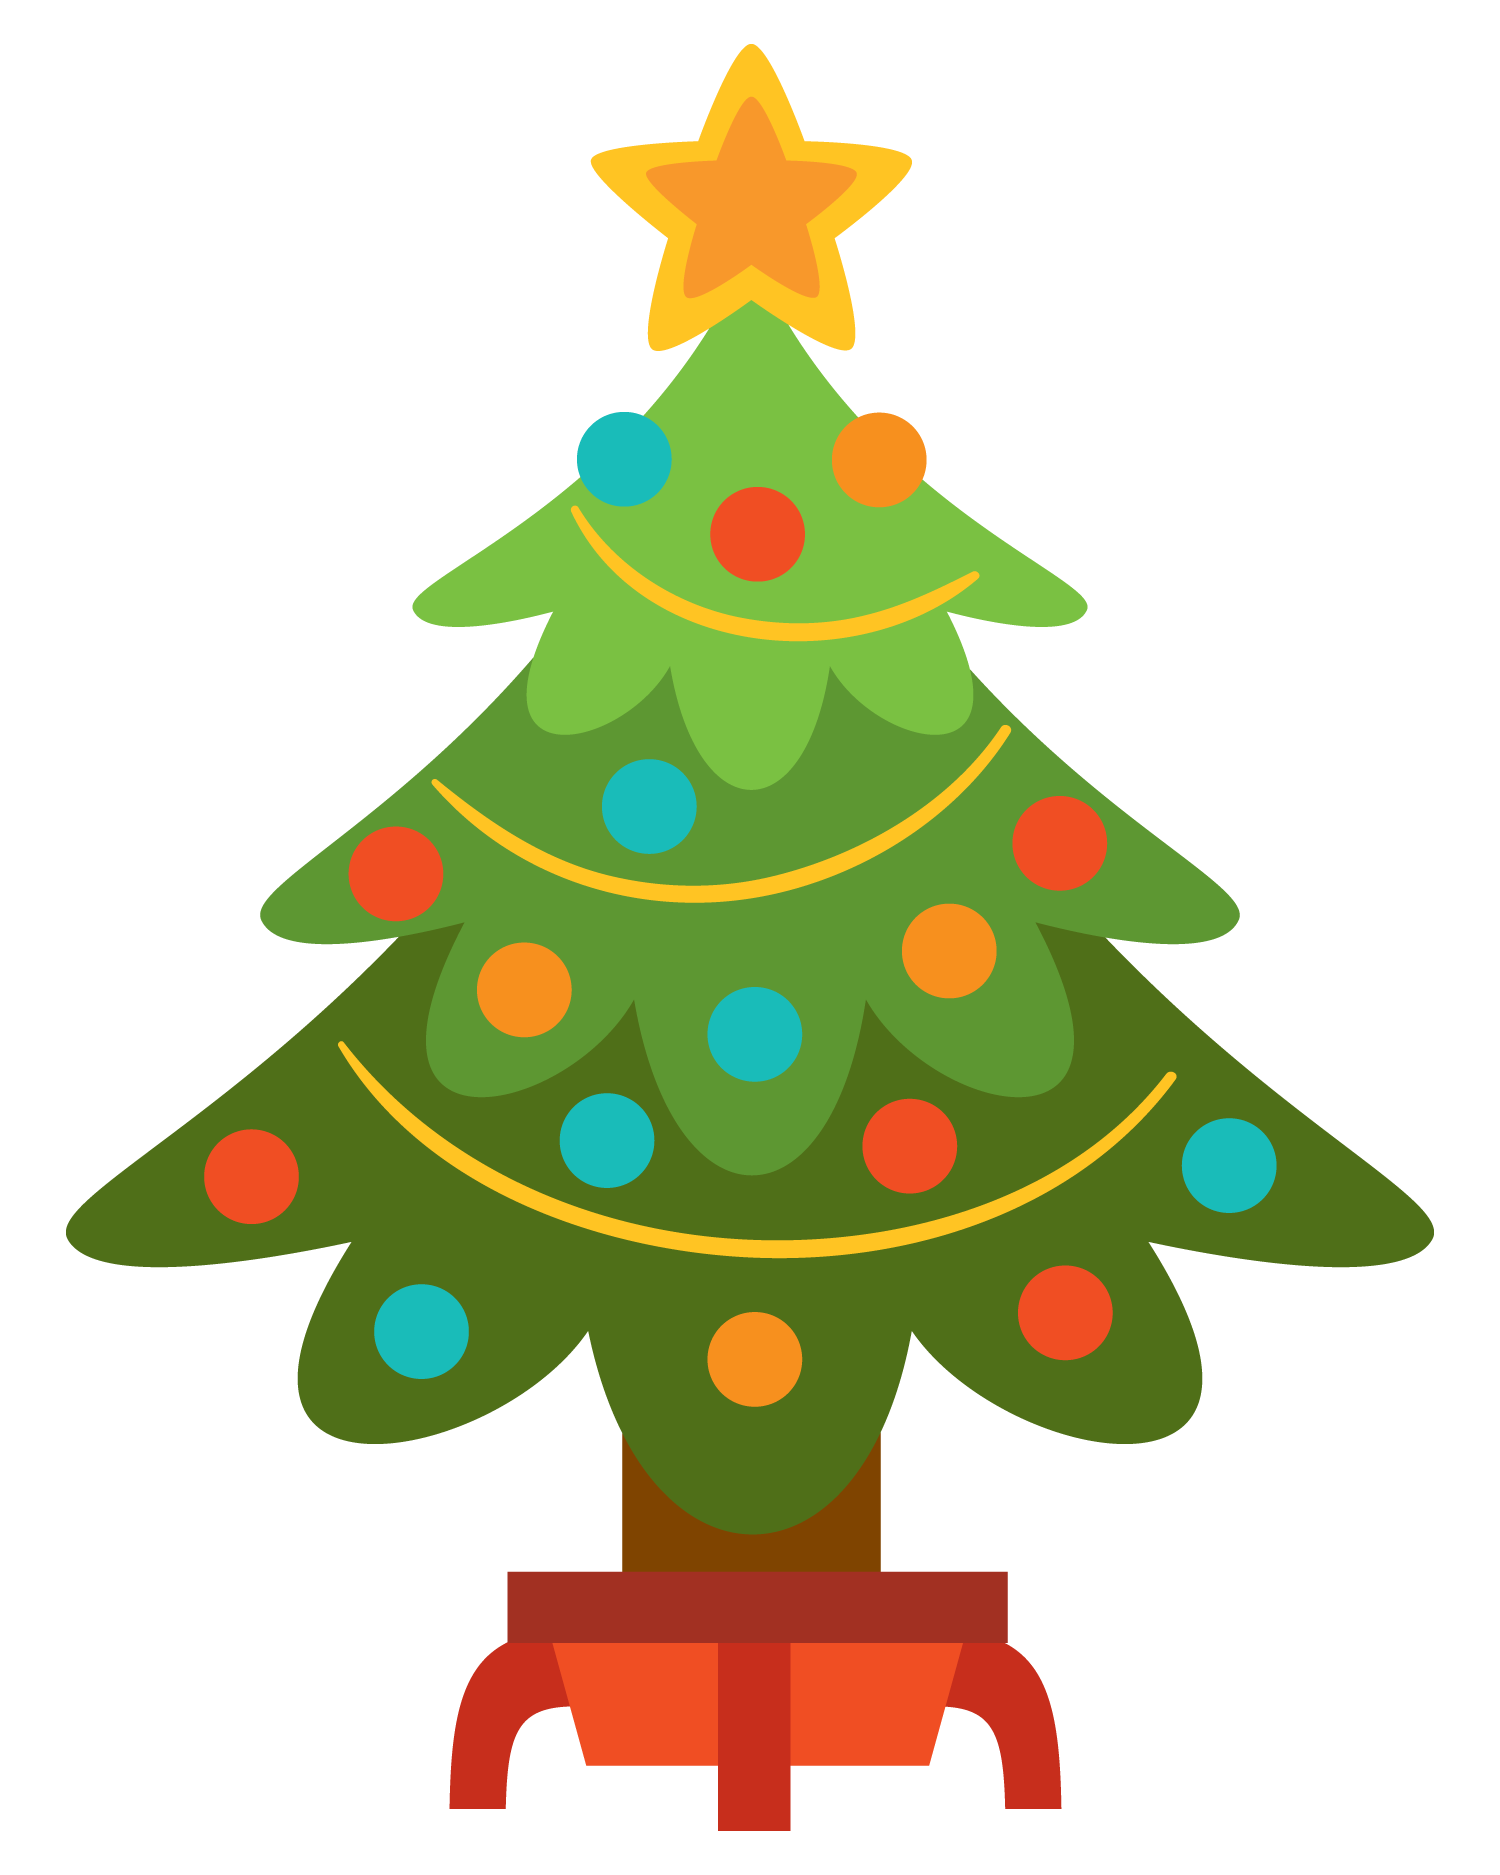 1500x1875 Free Christmas Tree Clip Art Christmas Moment Image 5